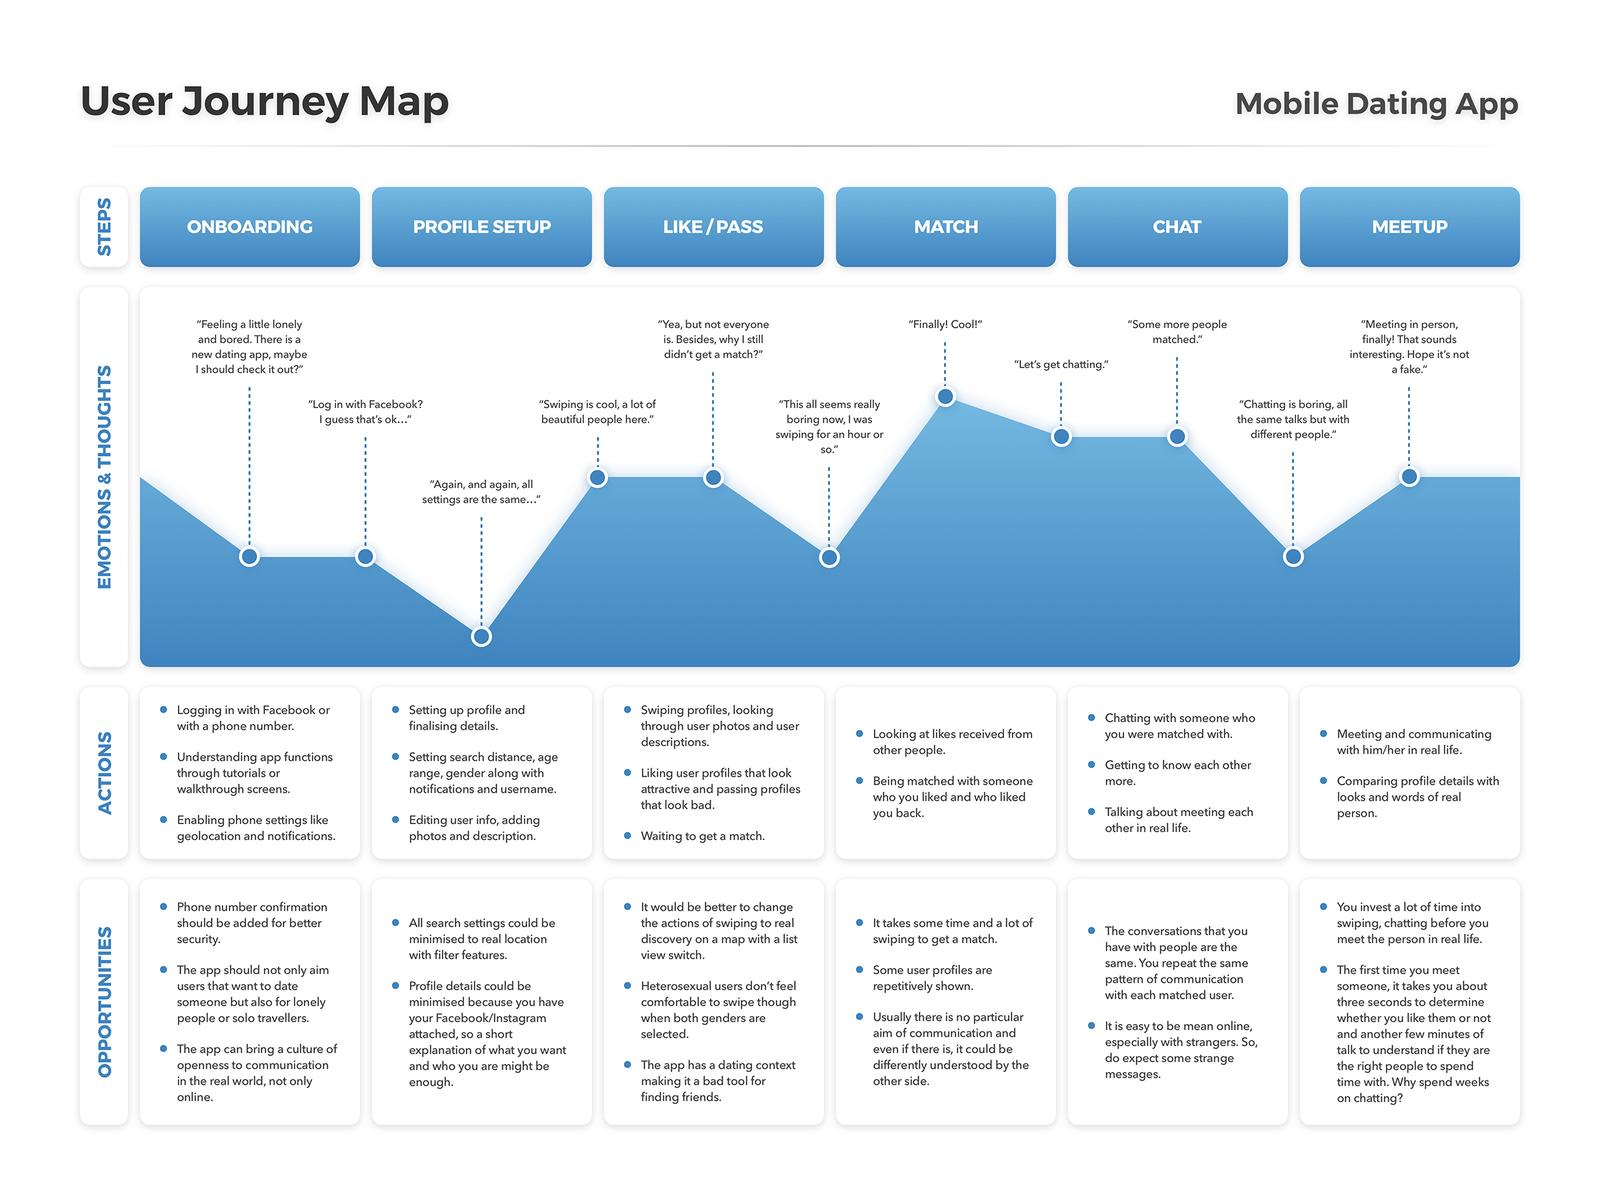 User Journey Map cover image